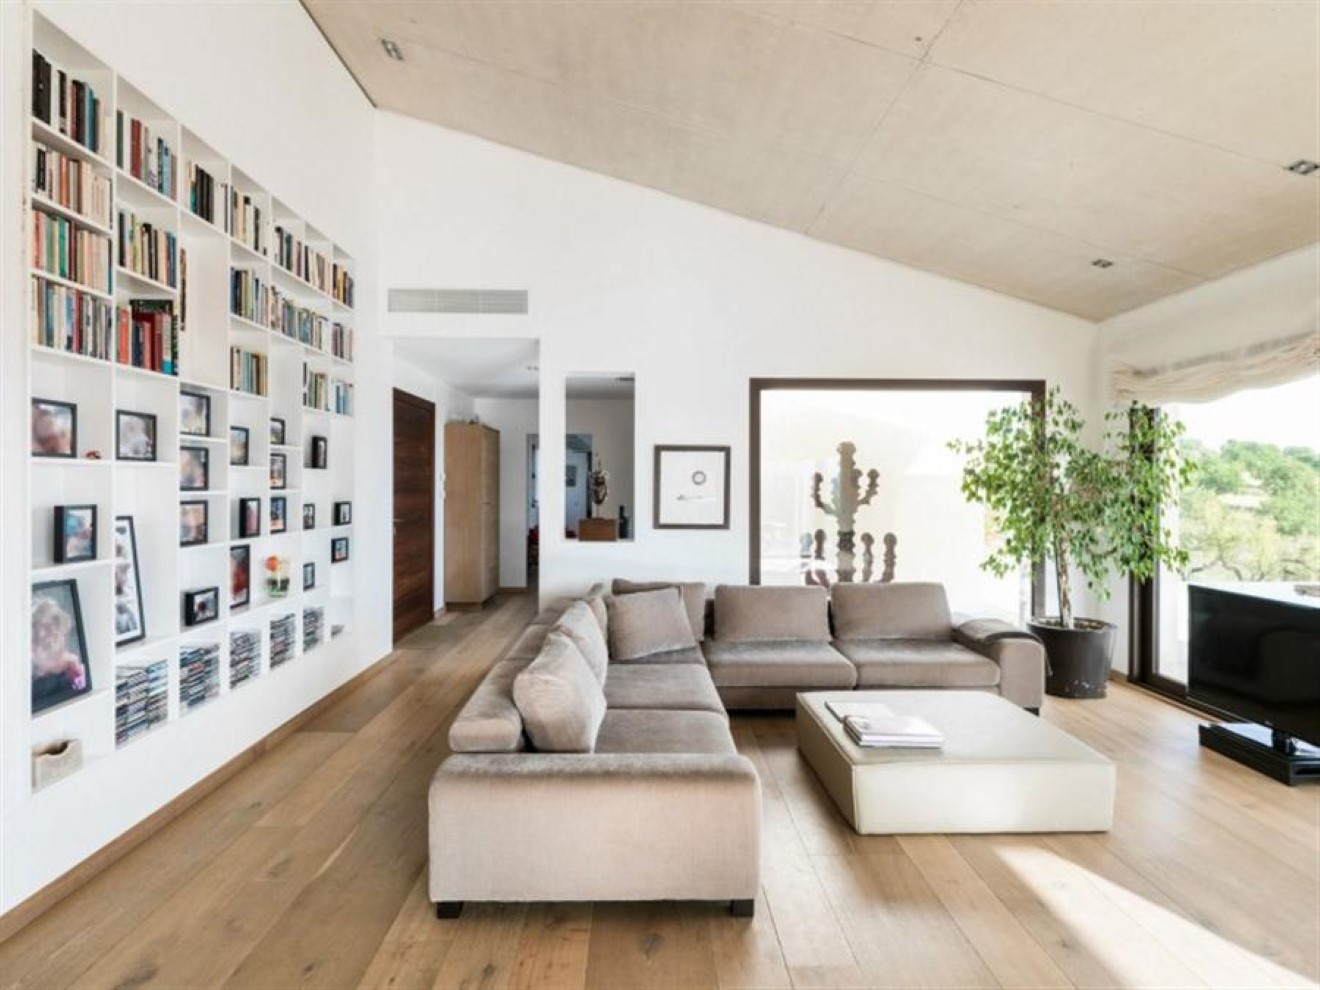 How to make a perfect interior design with built in for Perfect interior designs